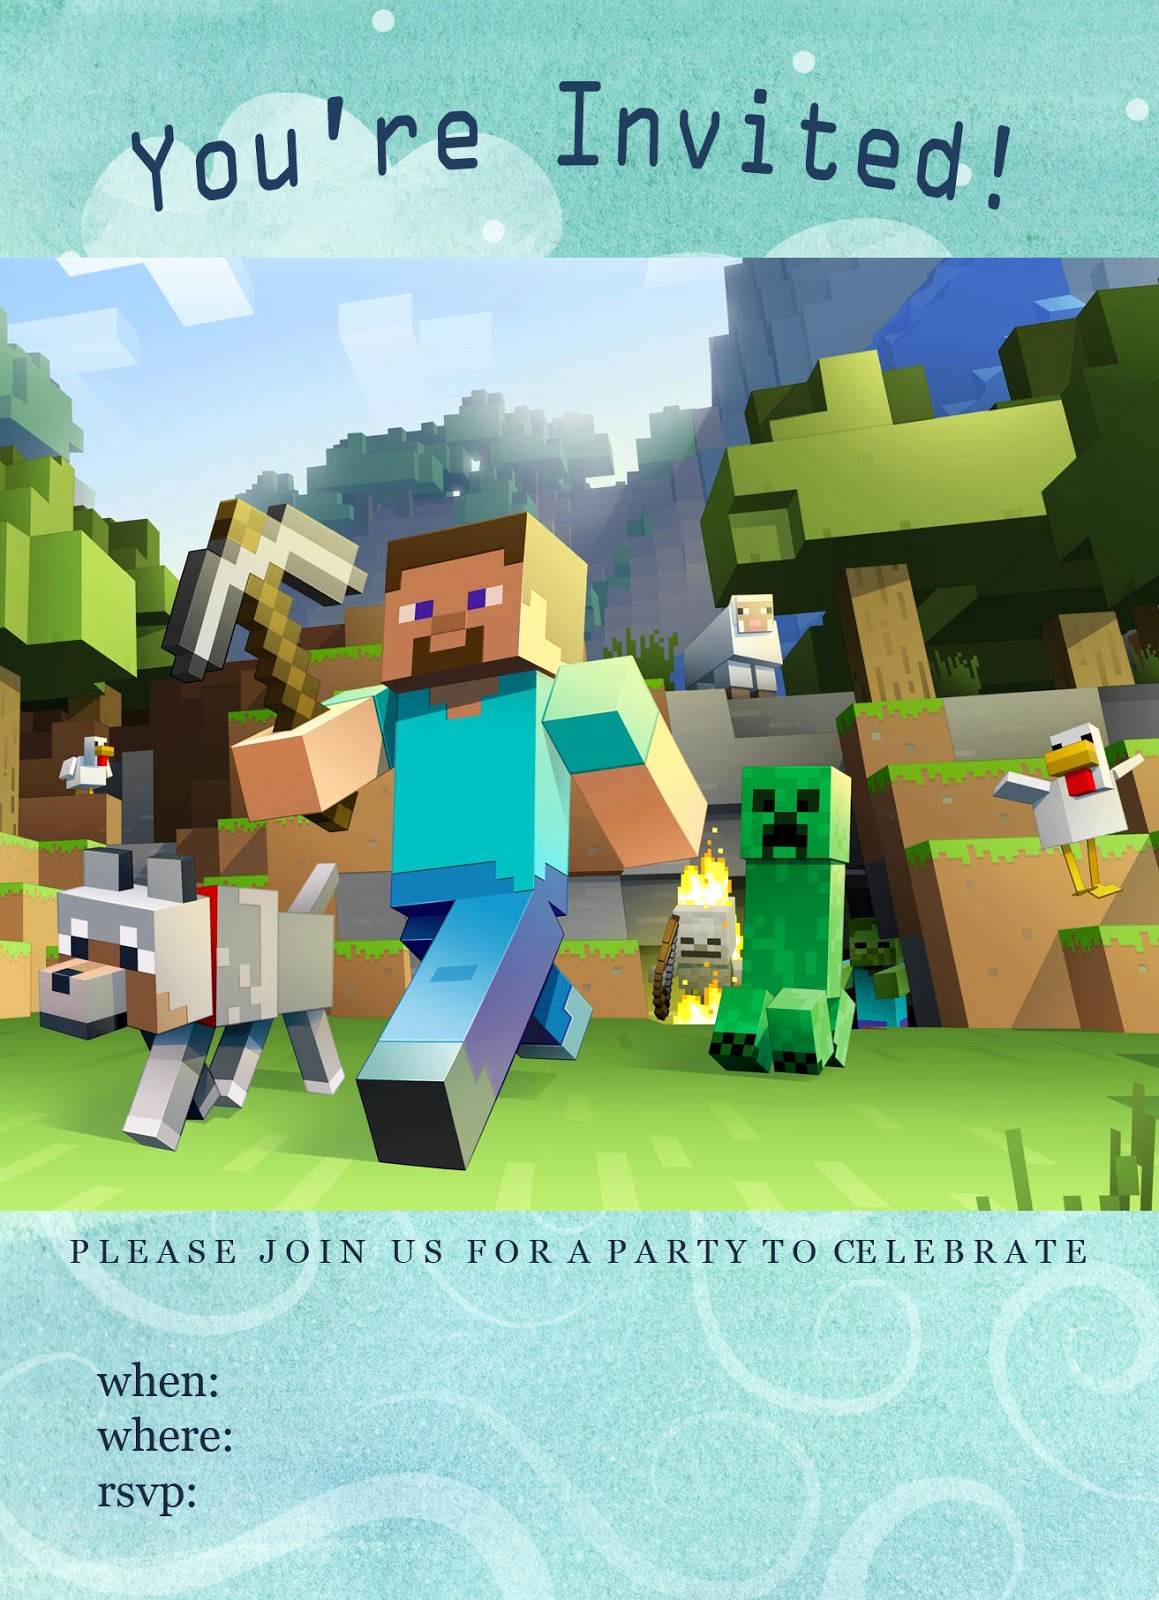 Minecraft Party Invitation Template Fresh Frame Worthy Shot I Graphy Tutorials I